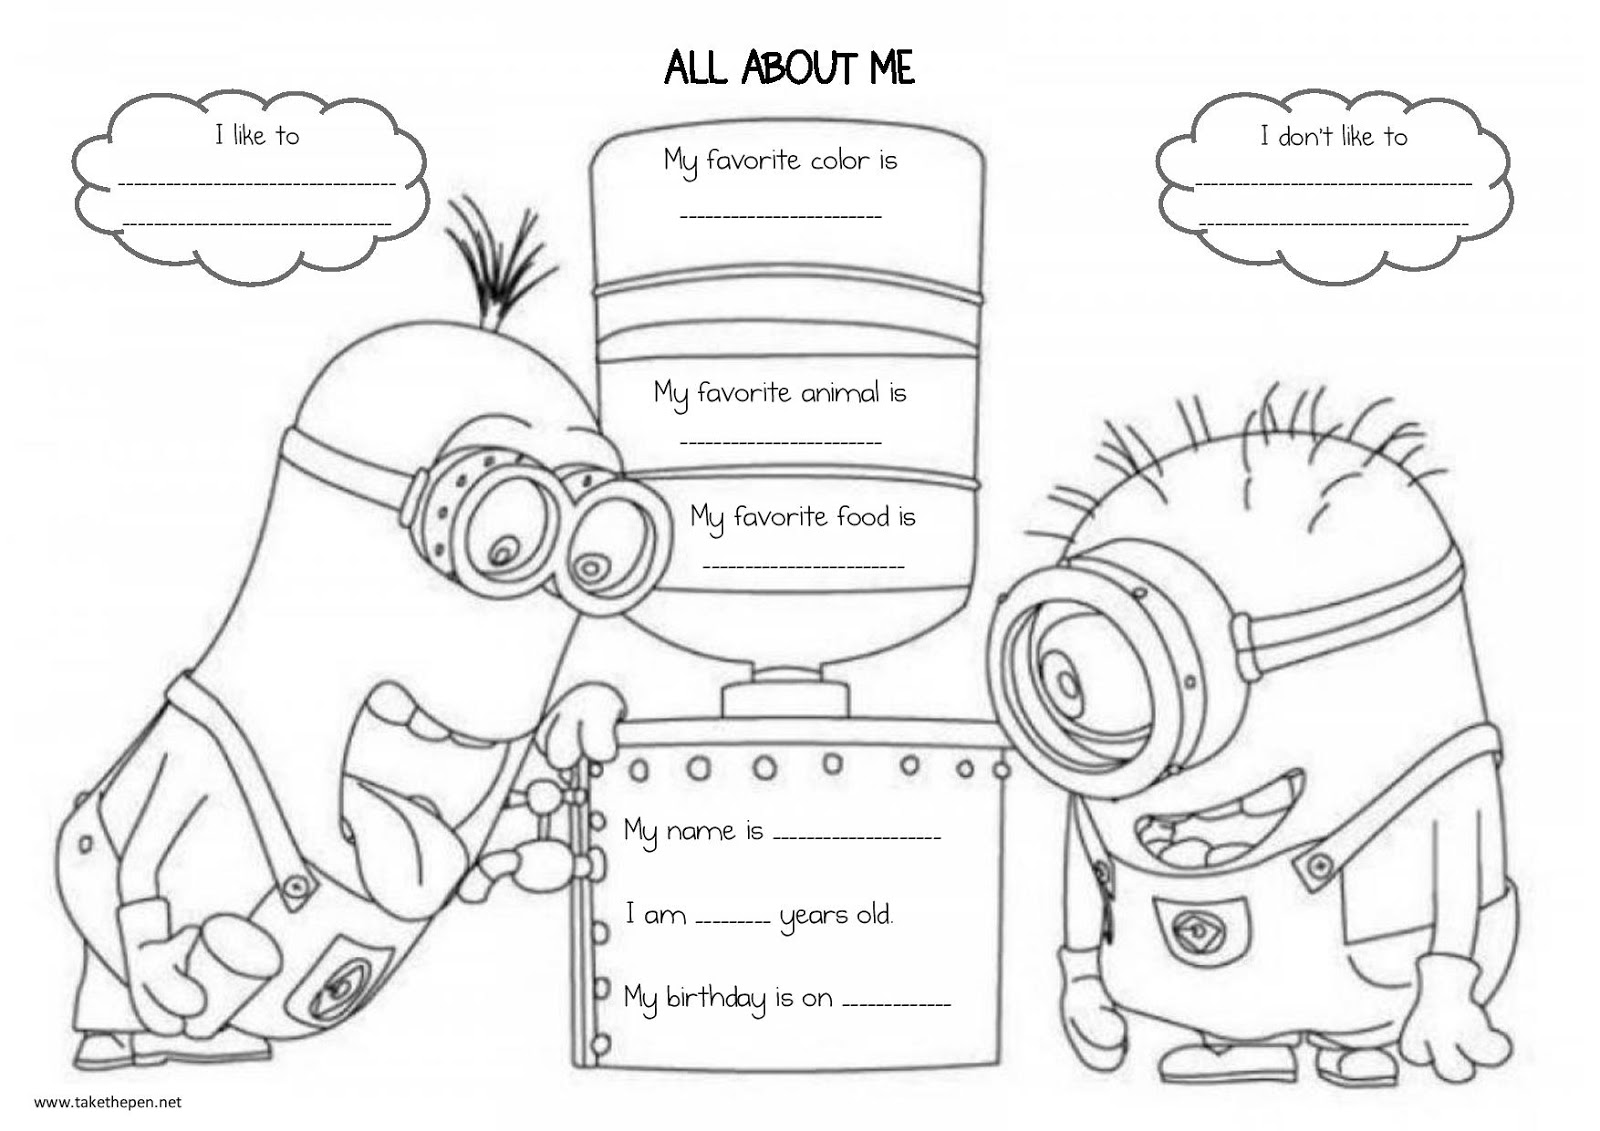 Crush image pertaining to all about me printable worksheet